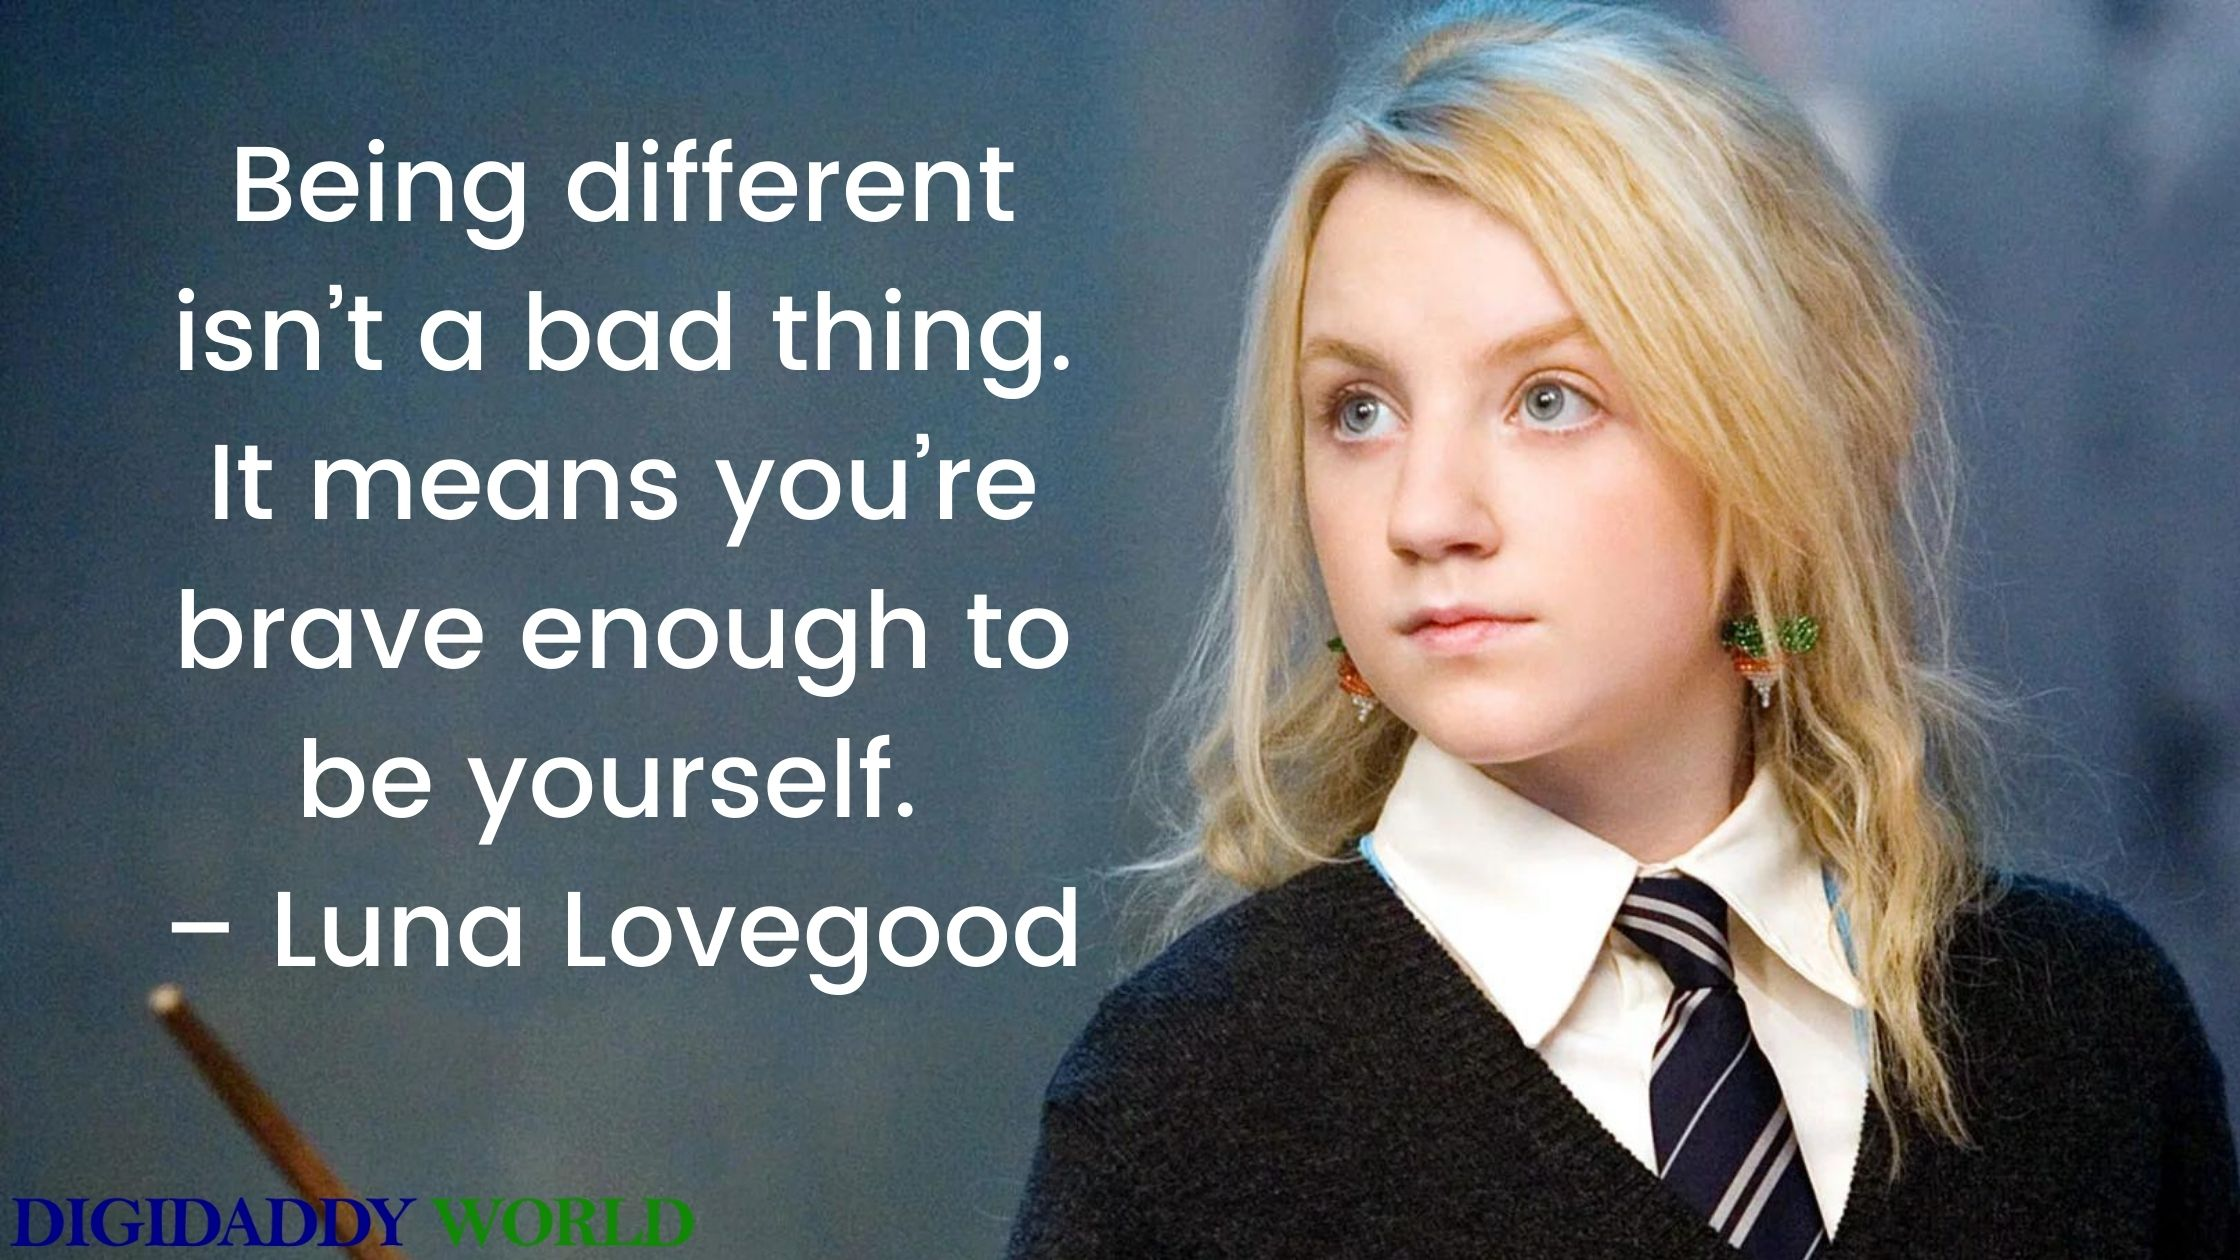 Luna Lovegood Quotes About Being Different